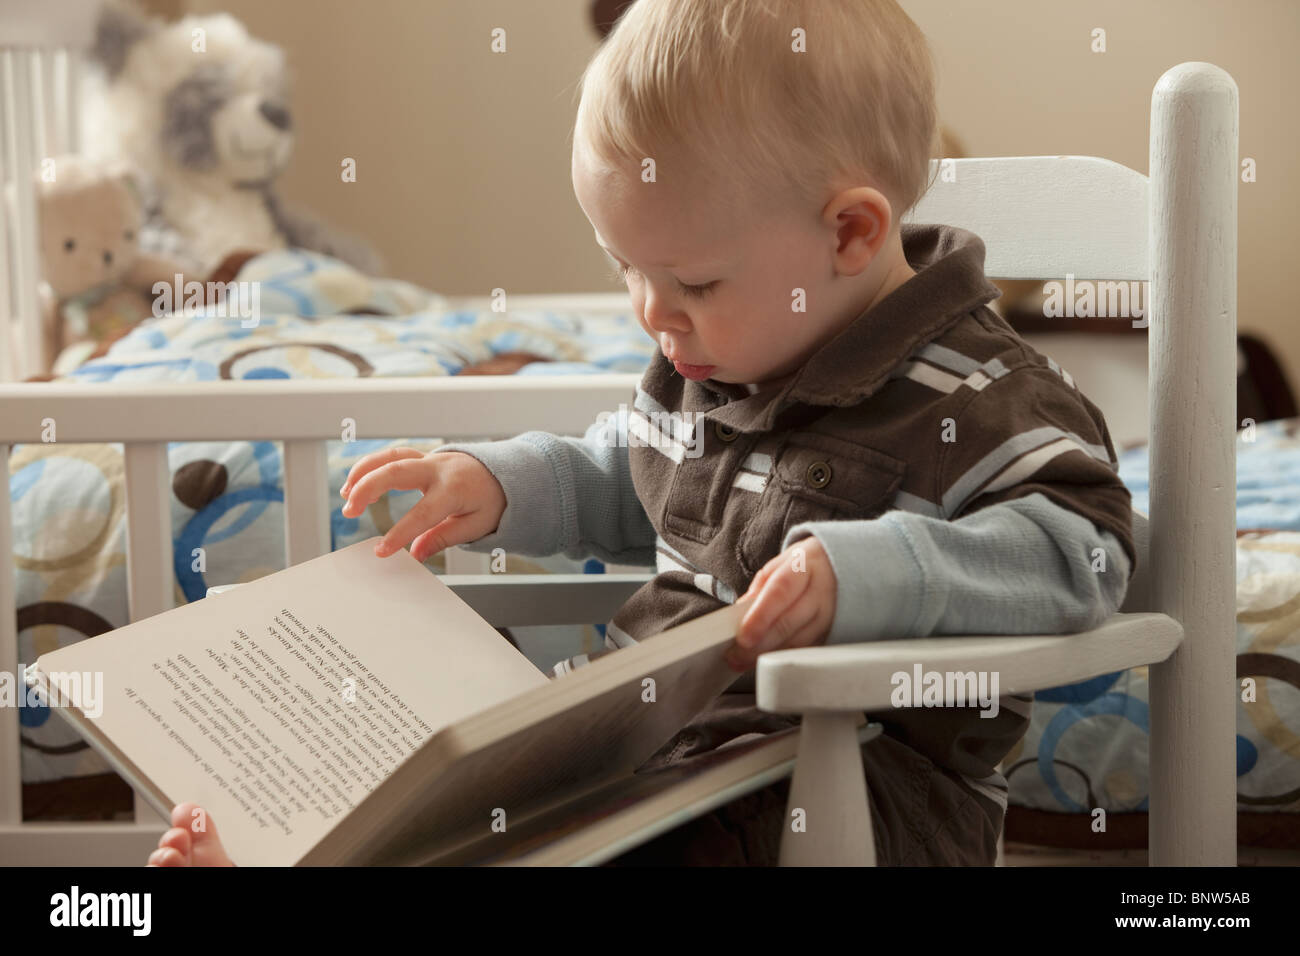 Toddler looking at a book - Stock Image